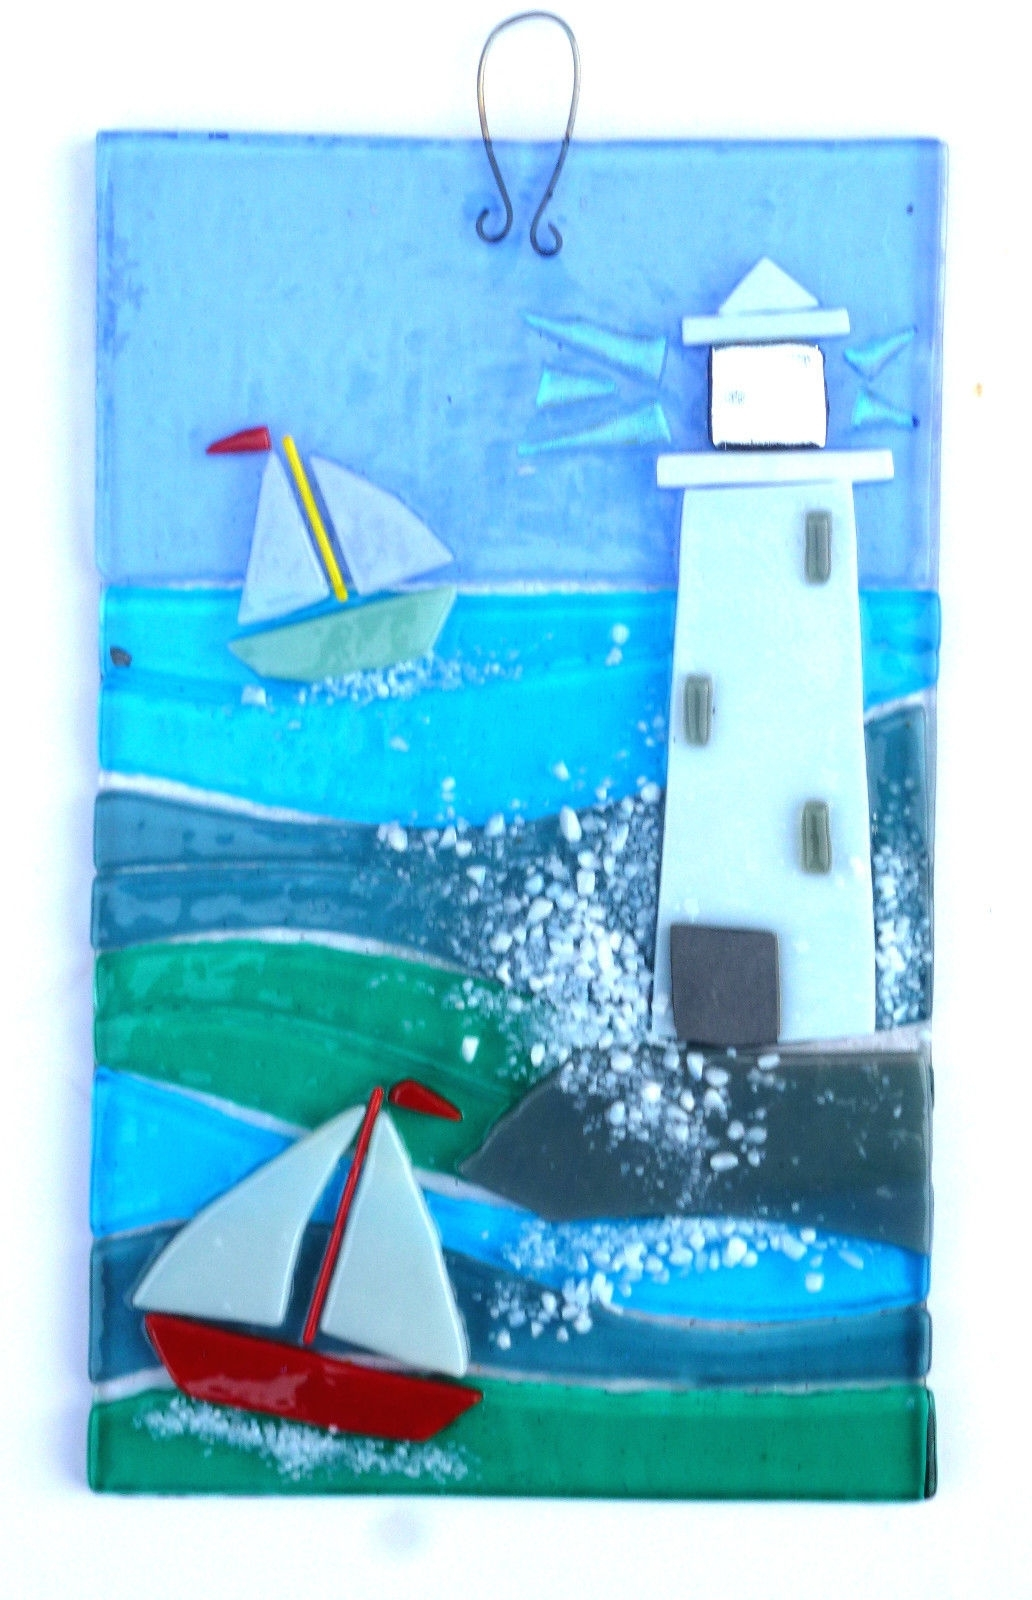 Newest Lighthouse, Original Fused Glass Wall Art In Pottery, Porcelain With Regard To Fused Dichroic Glass Wall Art (View 14 of 15)